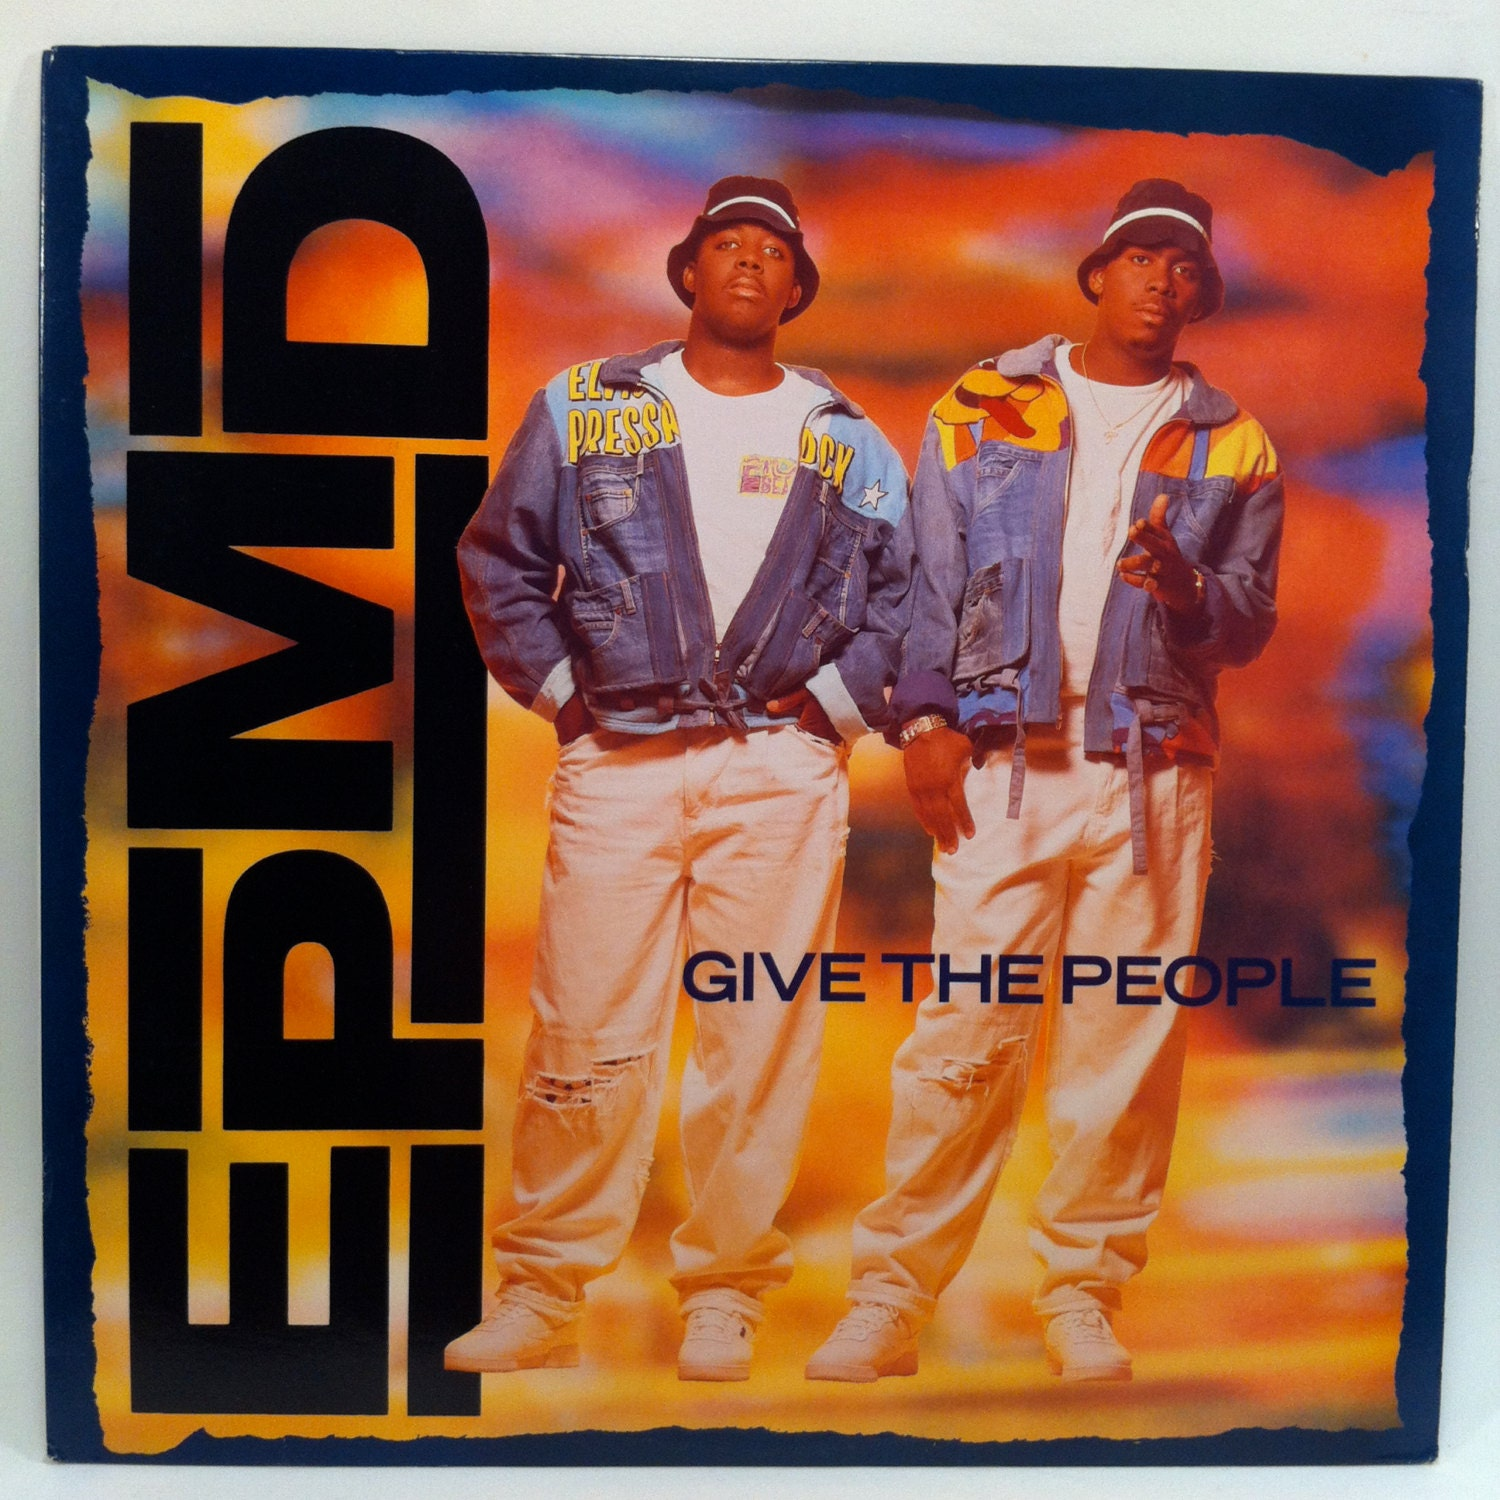 Epmd Give The People 12 Inch Single Vinyl Record 1991 Def Jam